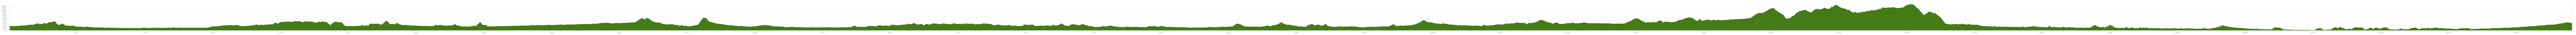 Elevation profile Cycle Tour Fulda nach Lourdes